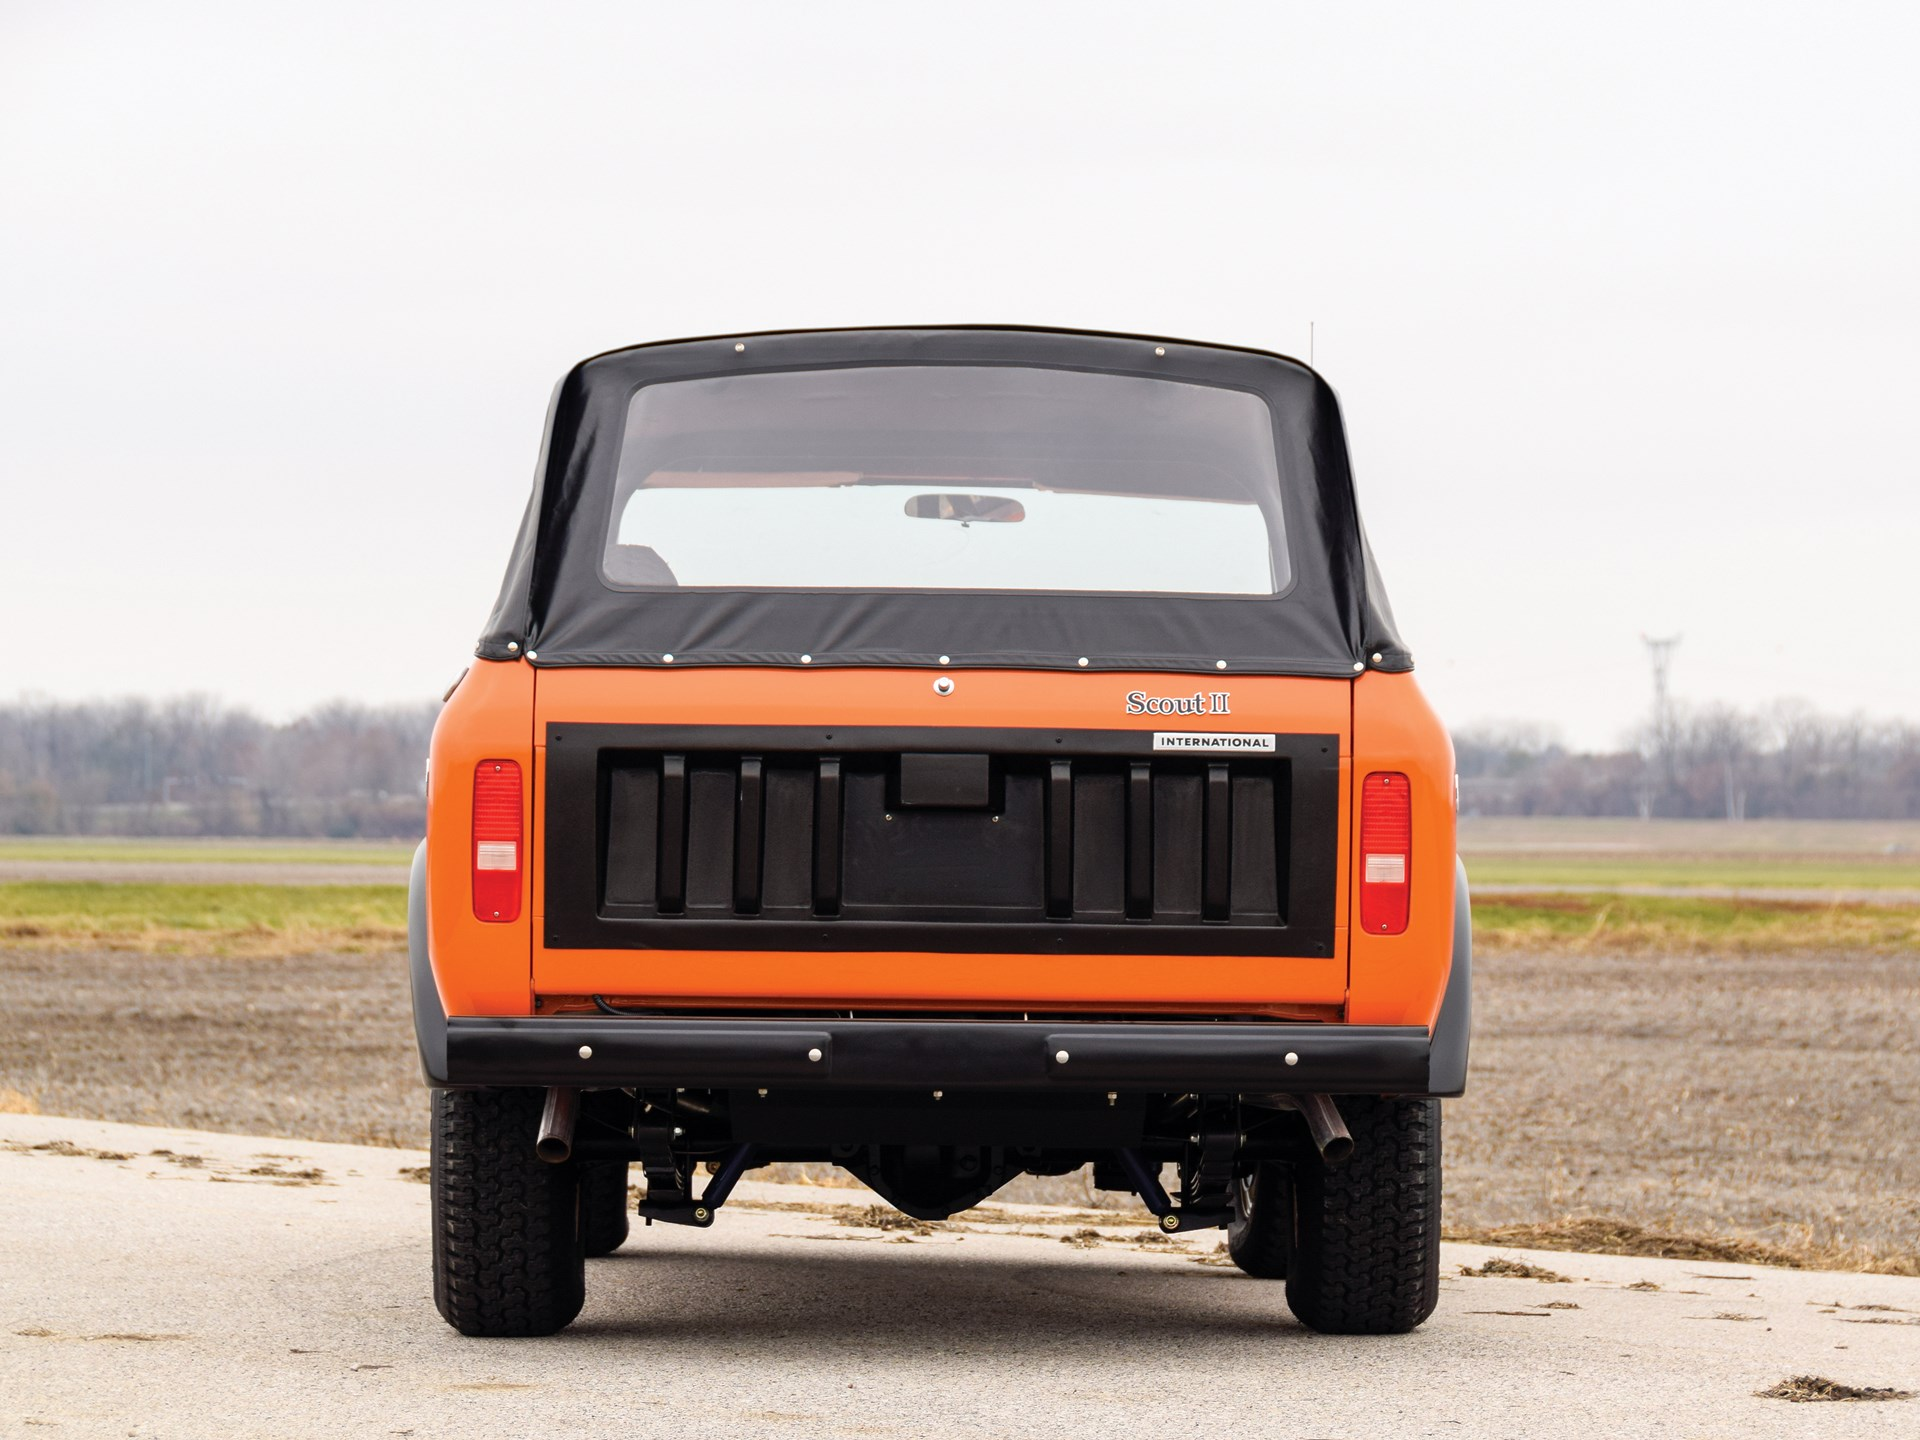 RM Sotheby's - 1978 International Super Scout II Conversion